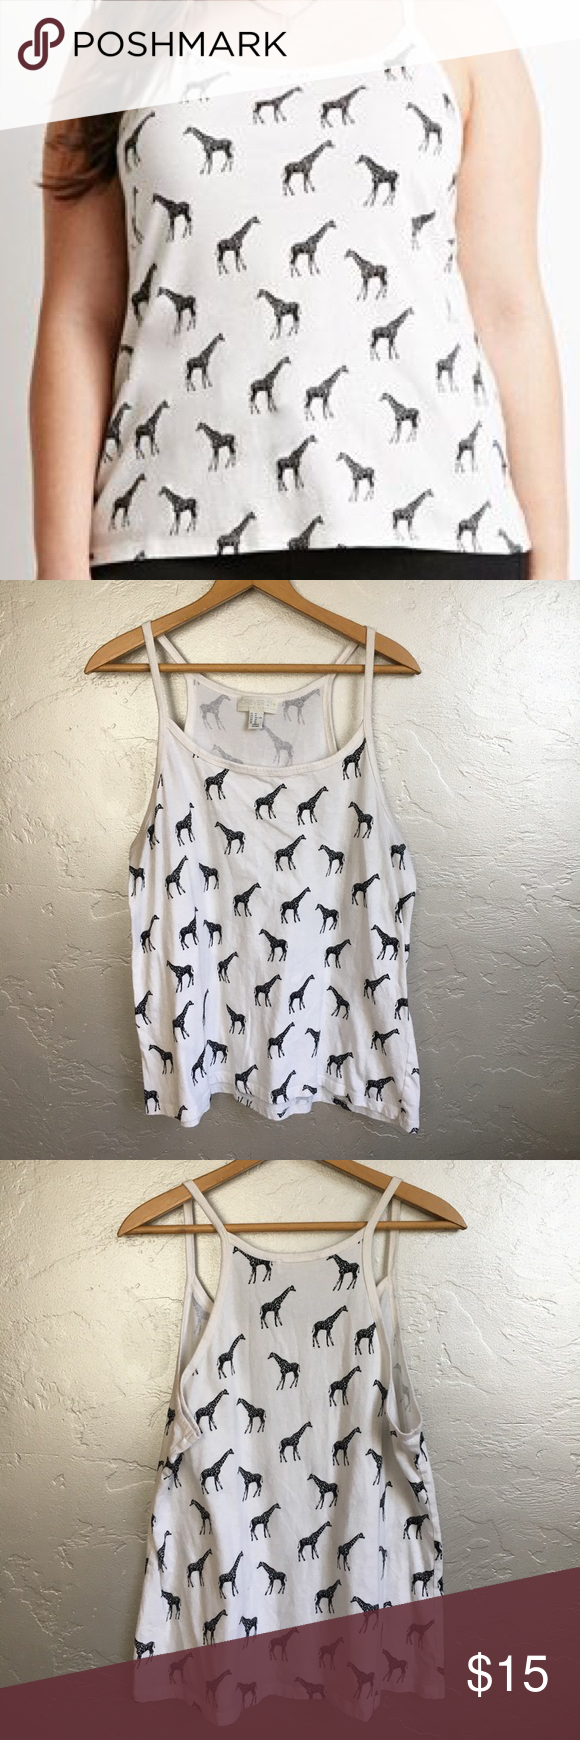 ac590b16460 Forever 21 Plus Giraffe Tank Giraffe print tank top from forever 21 plus.  Size 1X. In good used condition